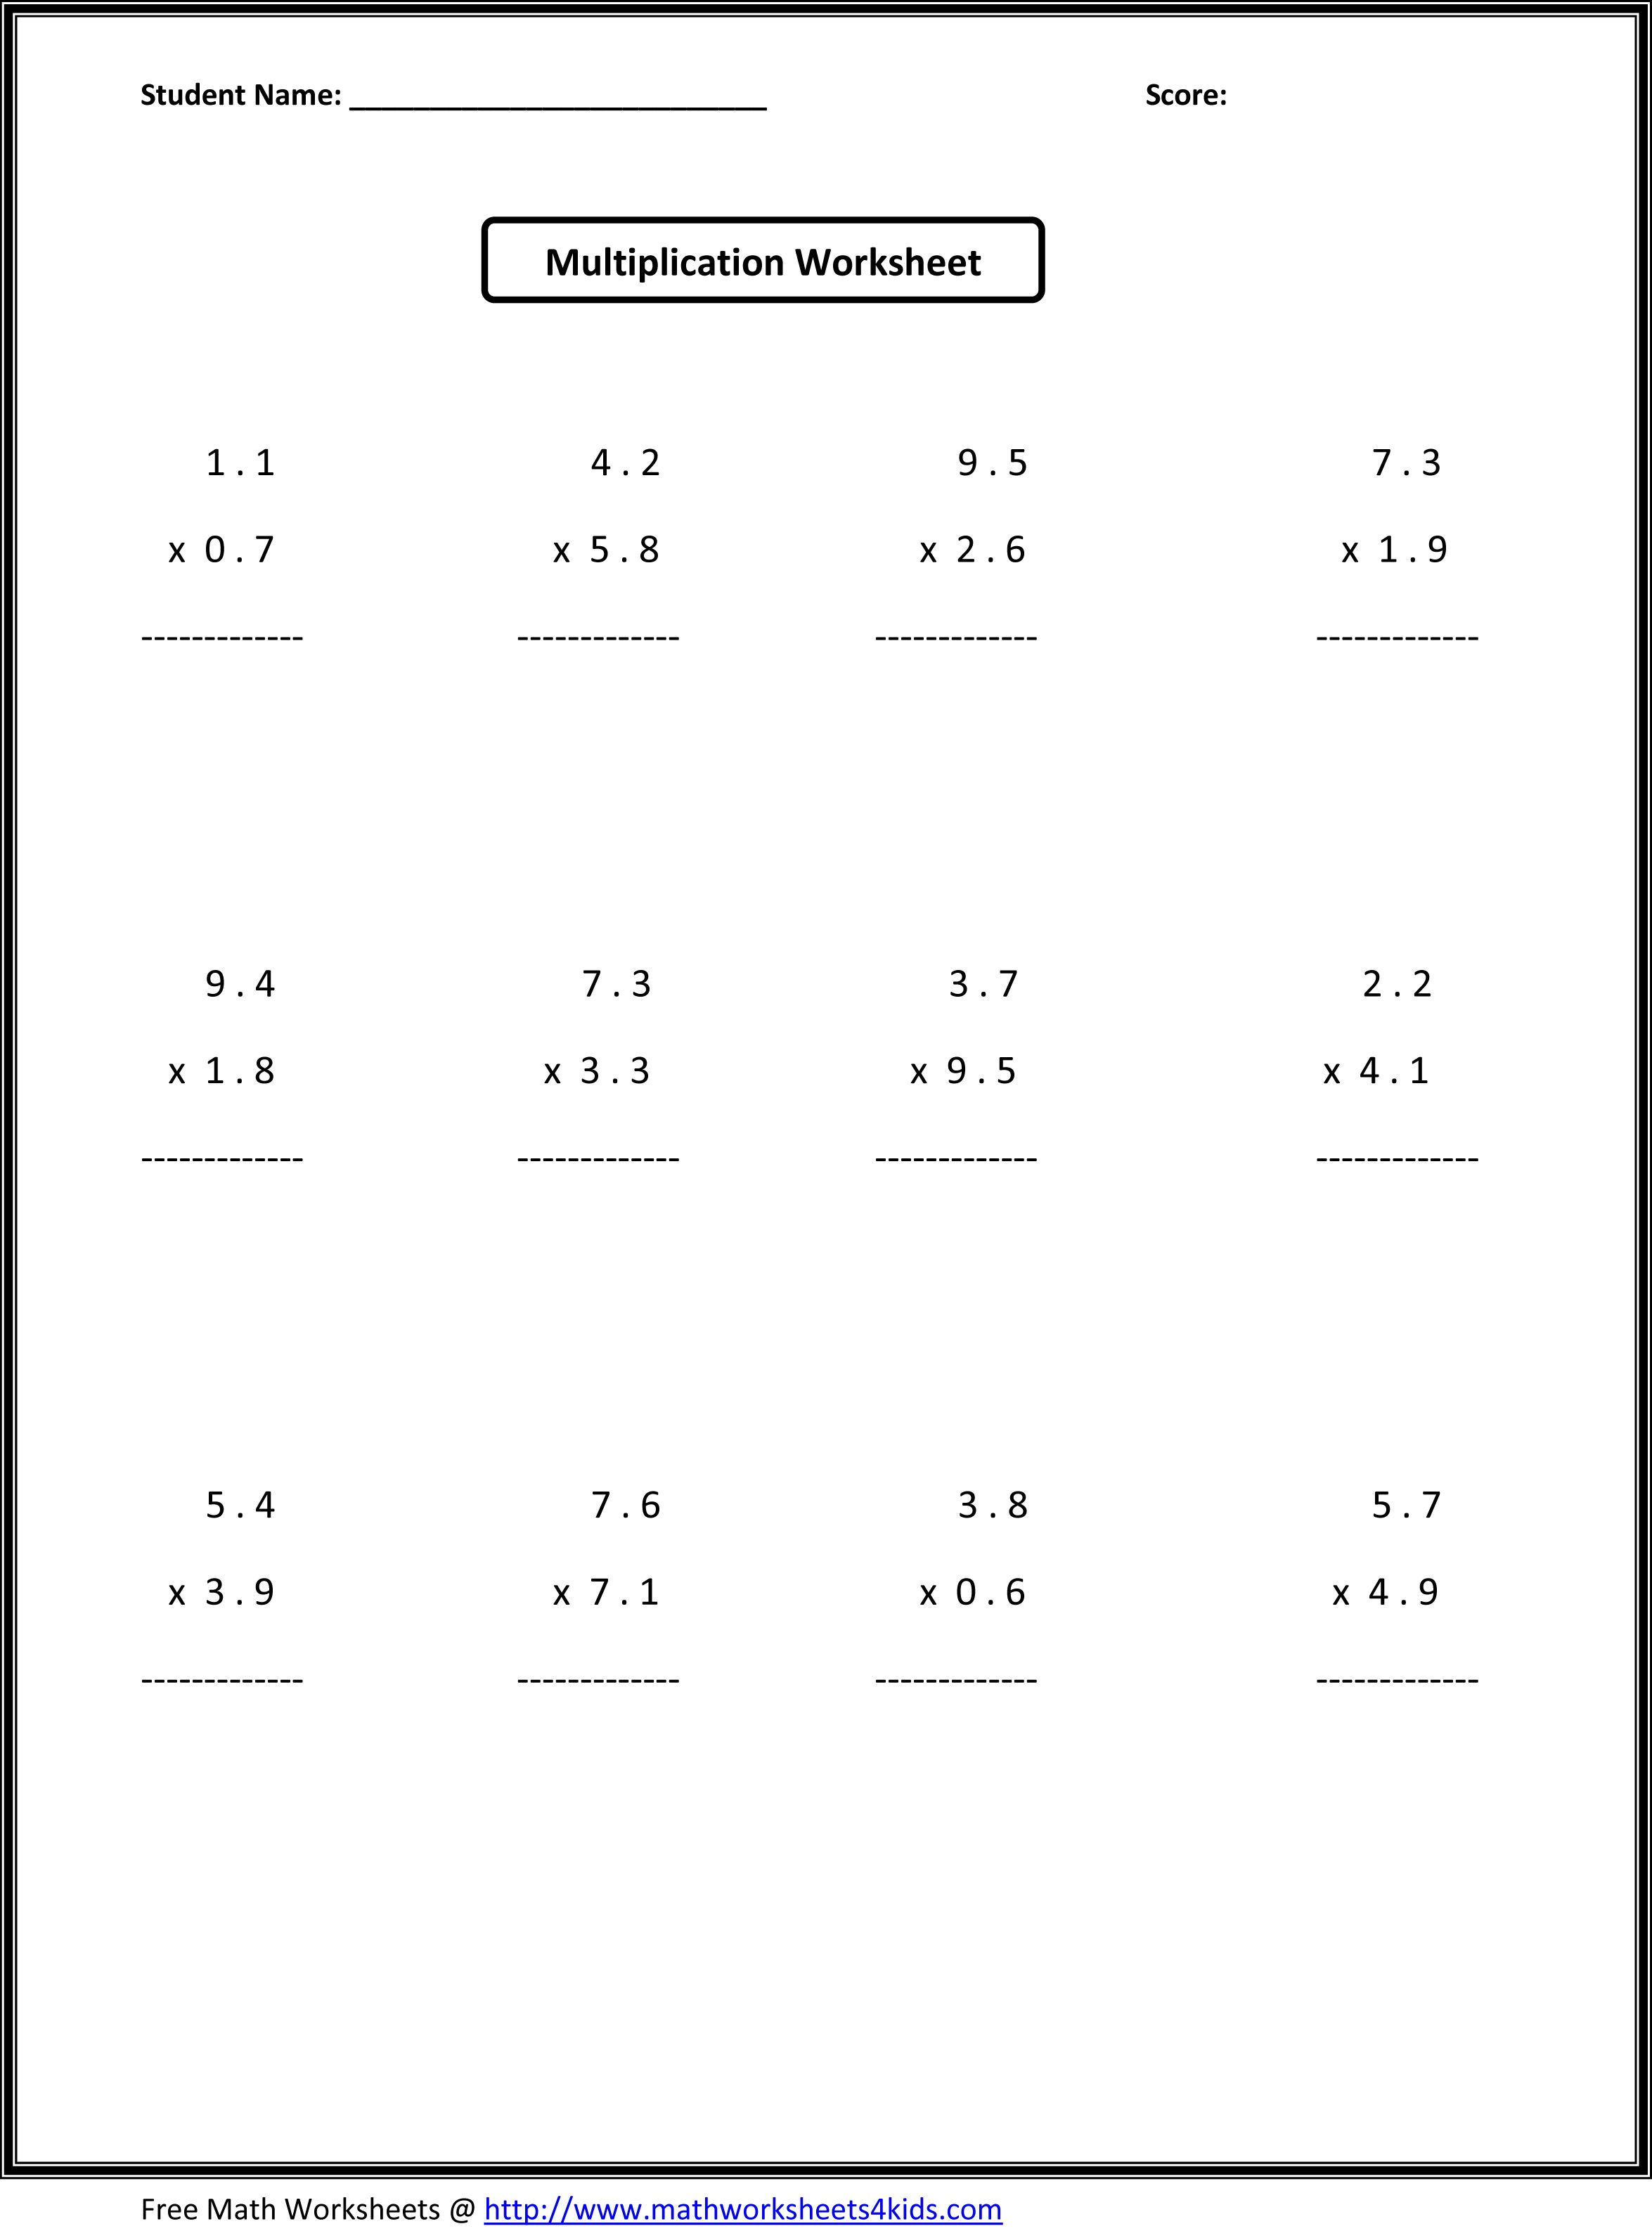 Printables Math Worksheets For 7th Grade 7th grade algebra worksheets math places value absolute based on basic math